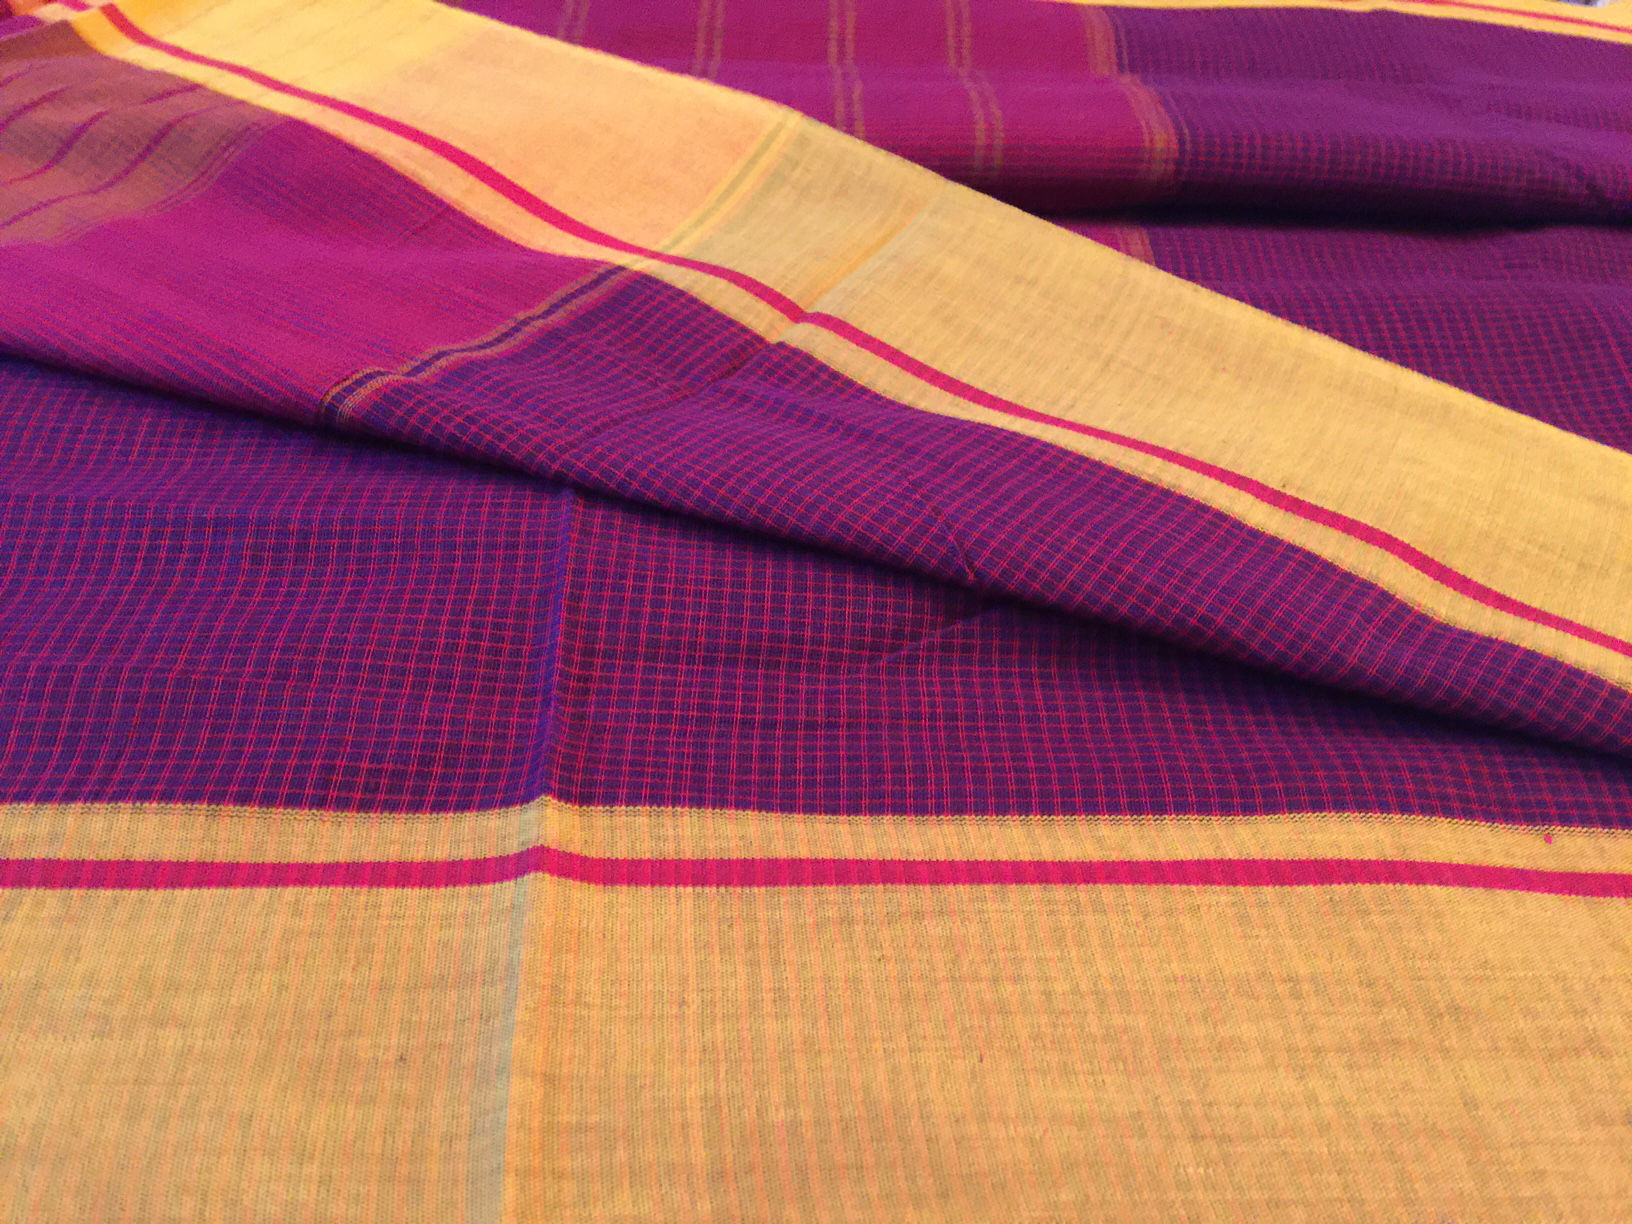 Patte Anchu Purple with Mustard Borders